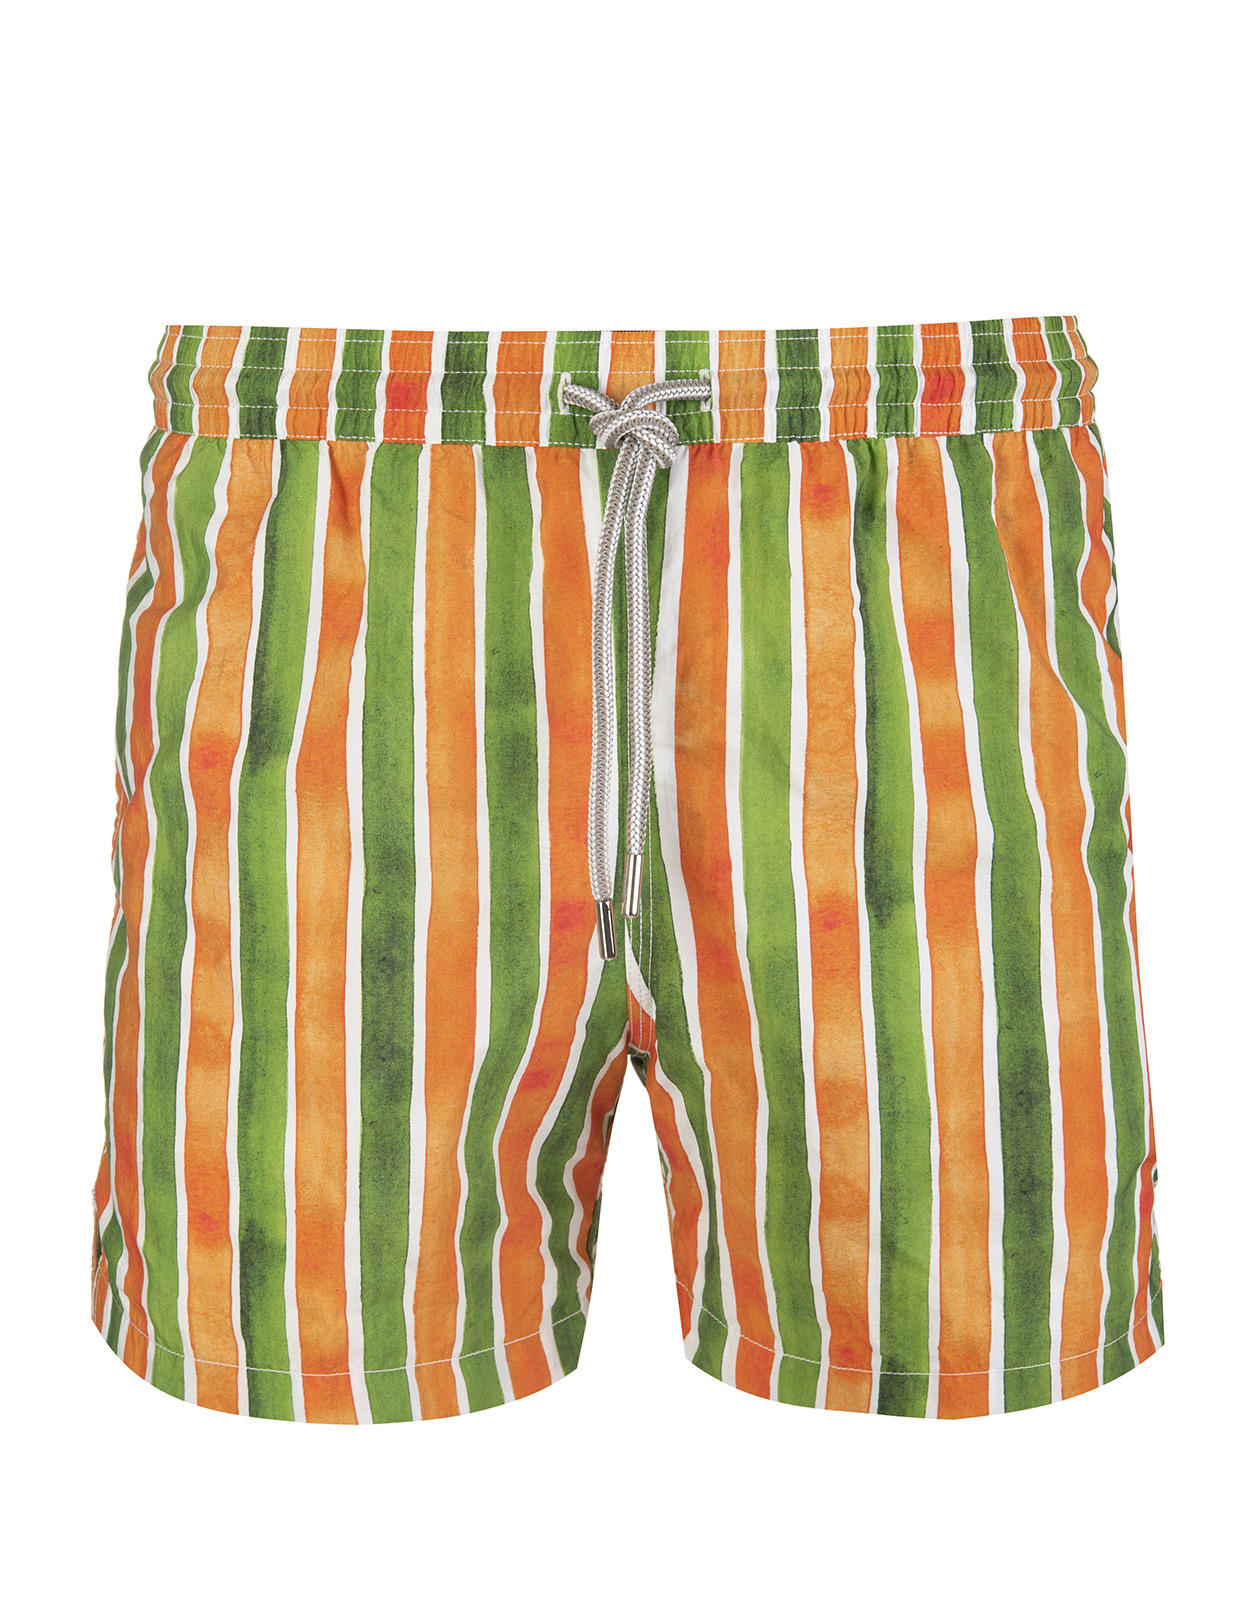 Green And Orange Striped Swimsuit